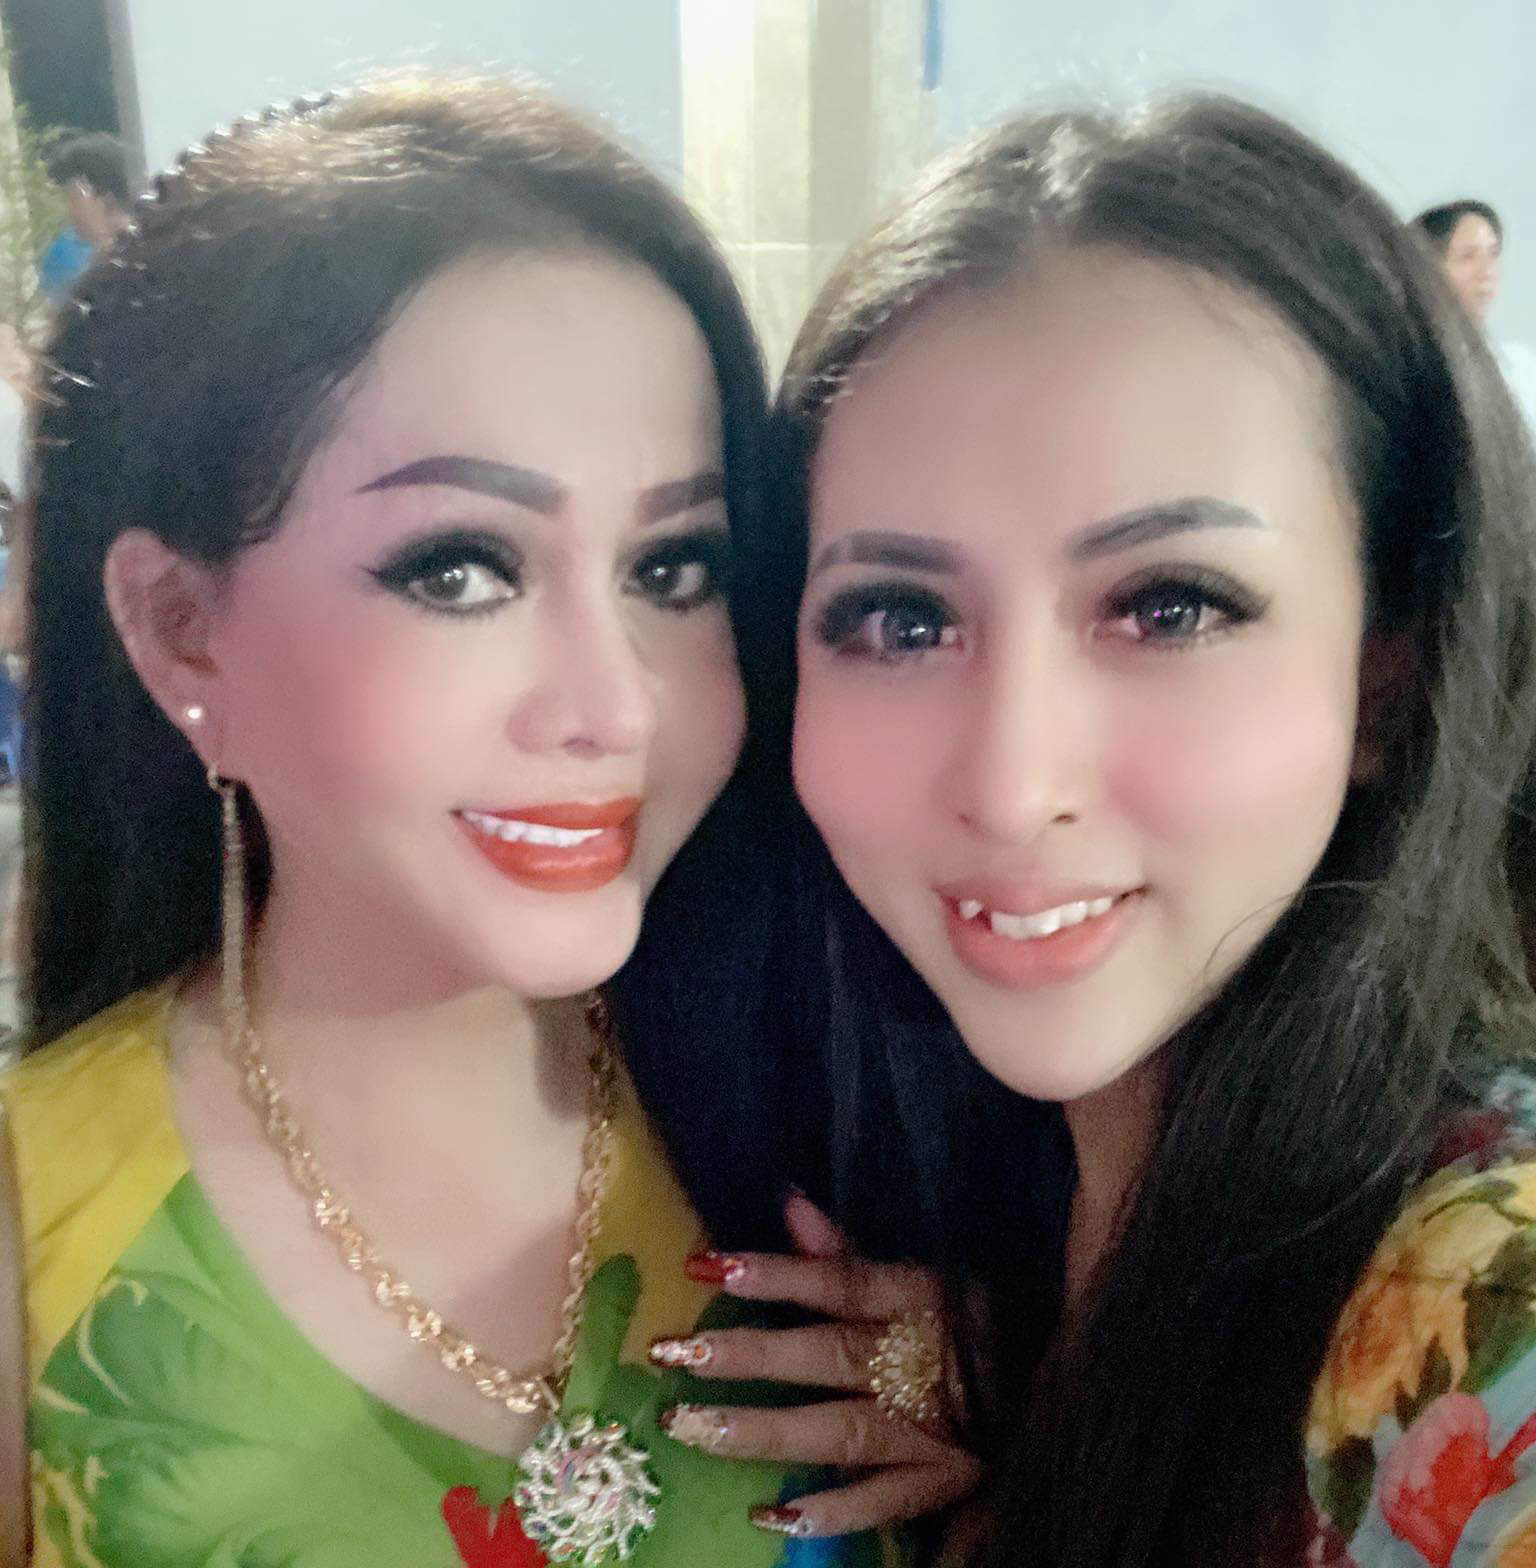 Khanh Du (right), a transgender singer working in Long An Province, Vietnam, is seen with another transgender colleague in this supplied photo.